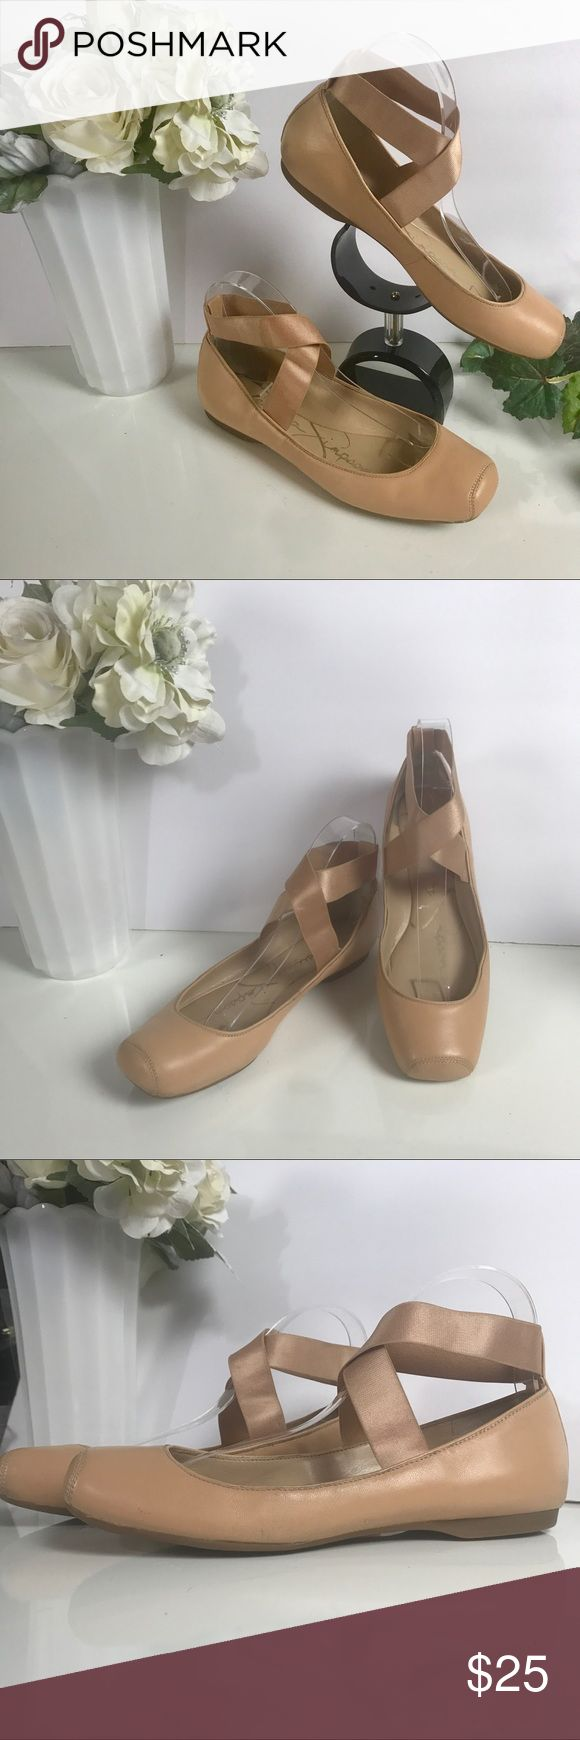 Jessica Simpson Nude Ballet Slipper Shoes Jessica Simpson Nude Ballet Slipper Shoes size 7.5. Jessica Simpson Shoes Flats & Loafers